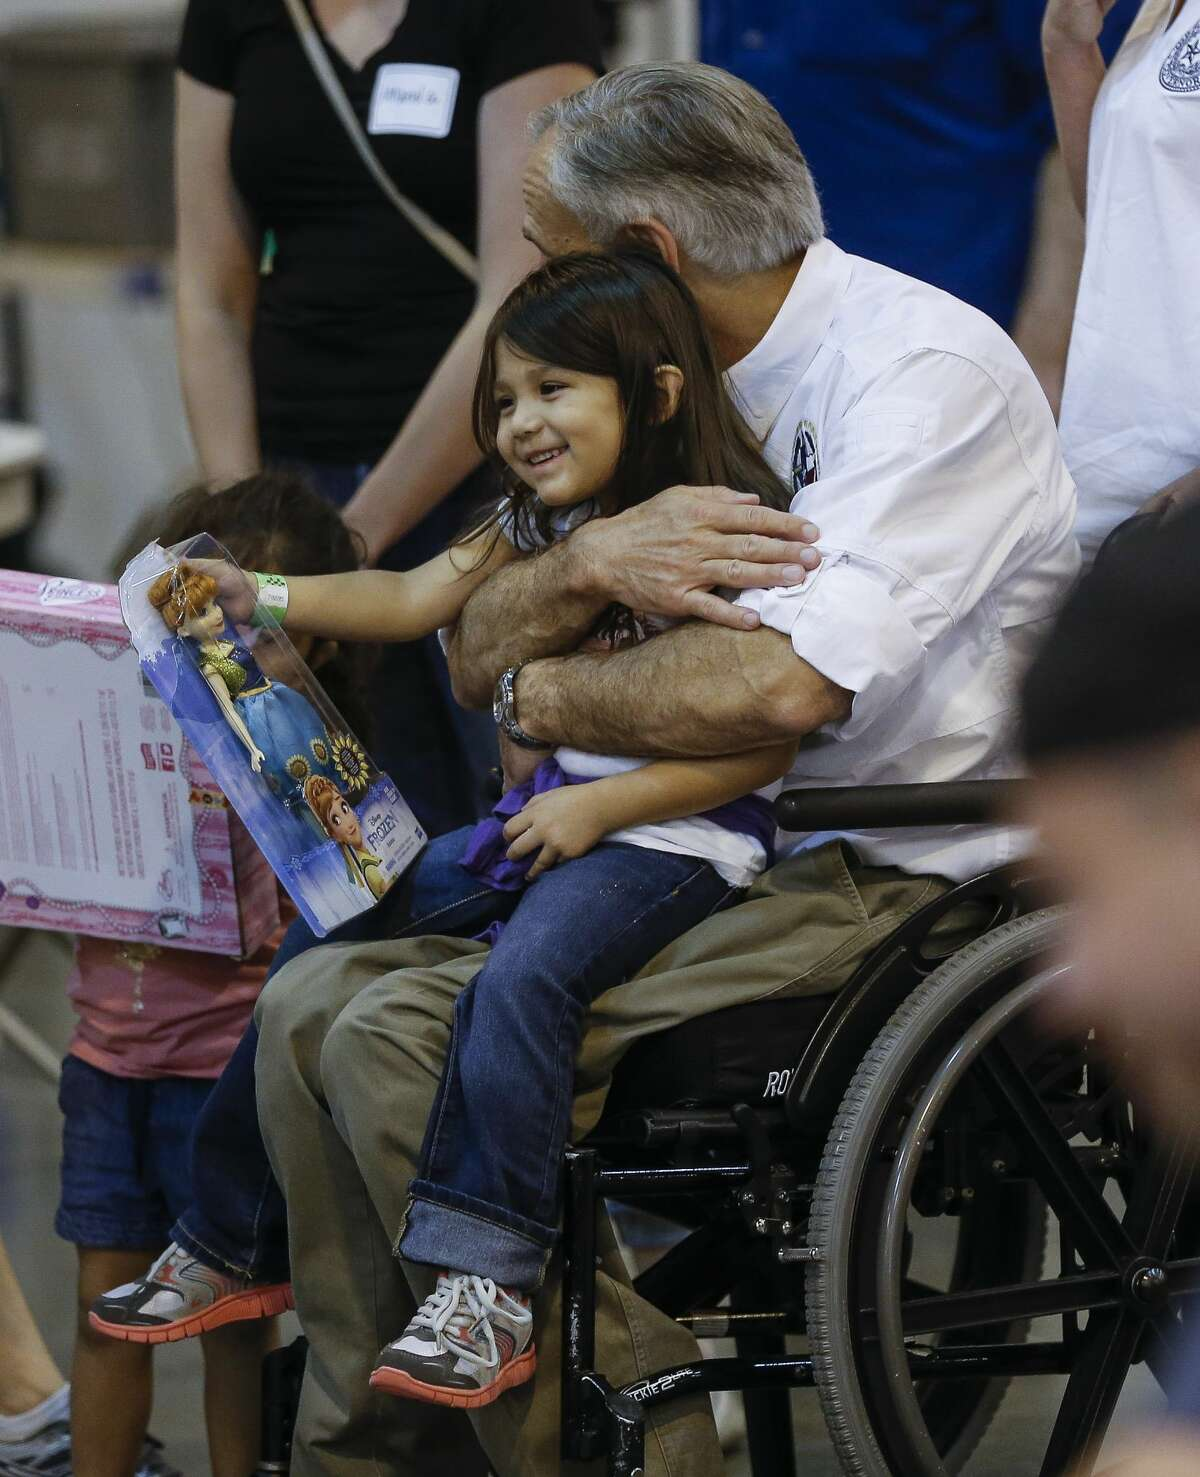 Texas governor Greg Abbott hugs a child while visiting Tropical Storm Harvey evacuees at NRG Center in Houston Saturday, Sept. 2, 2017. ( Michael Ciaglo / Houston Chronicle)